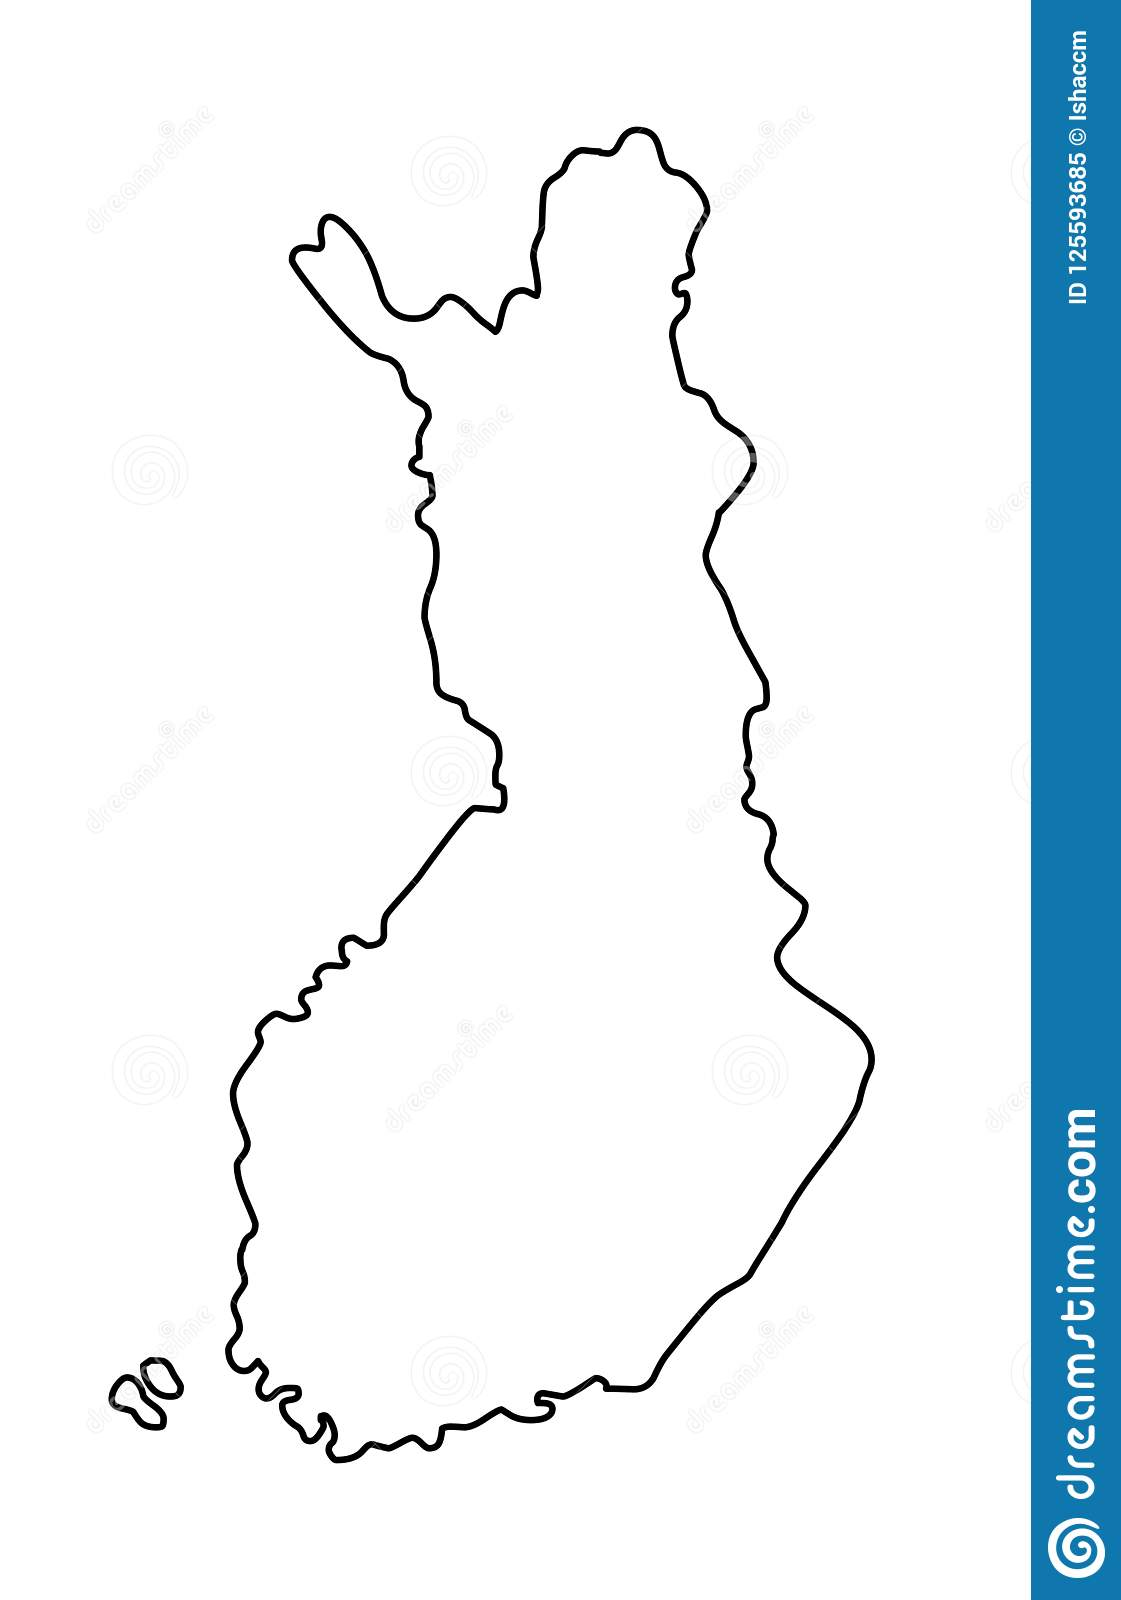 Finland Outline Map Vector Illustration Stock Vector ...